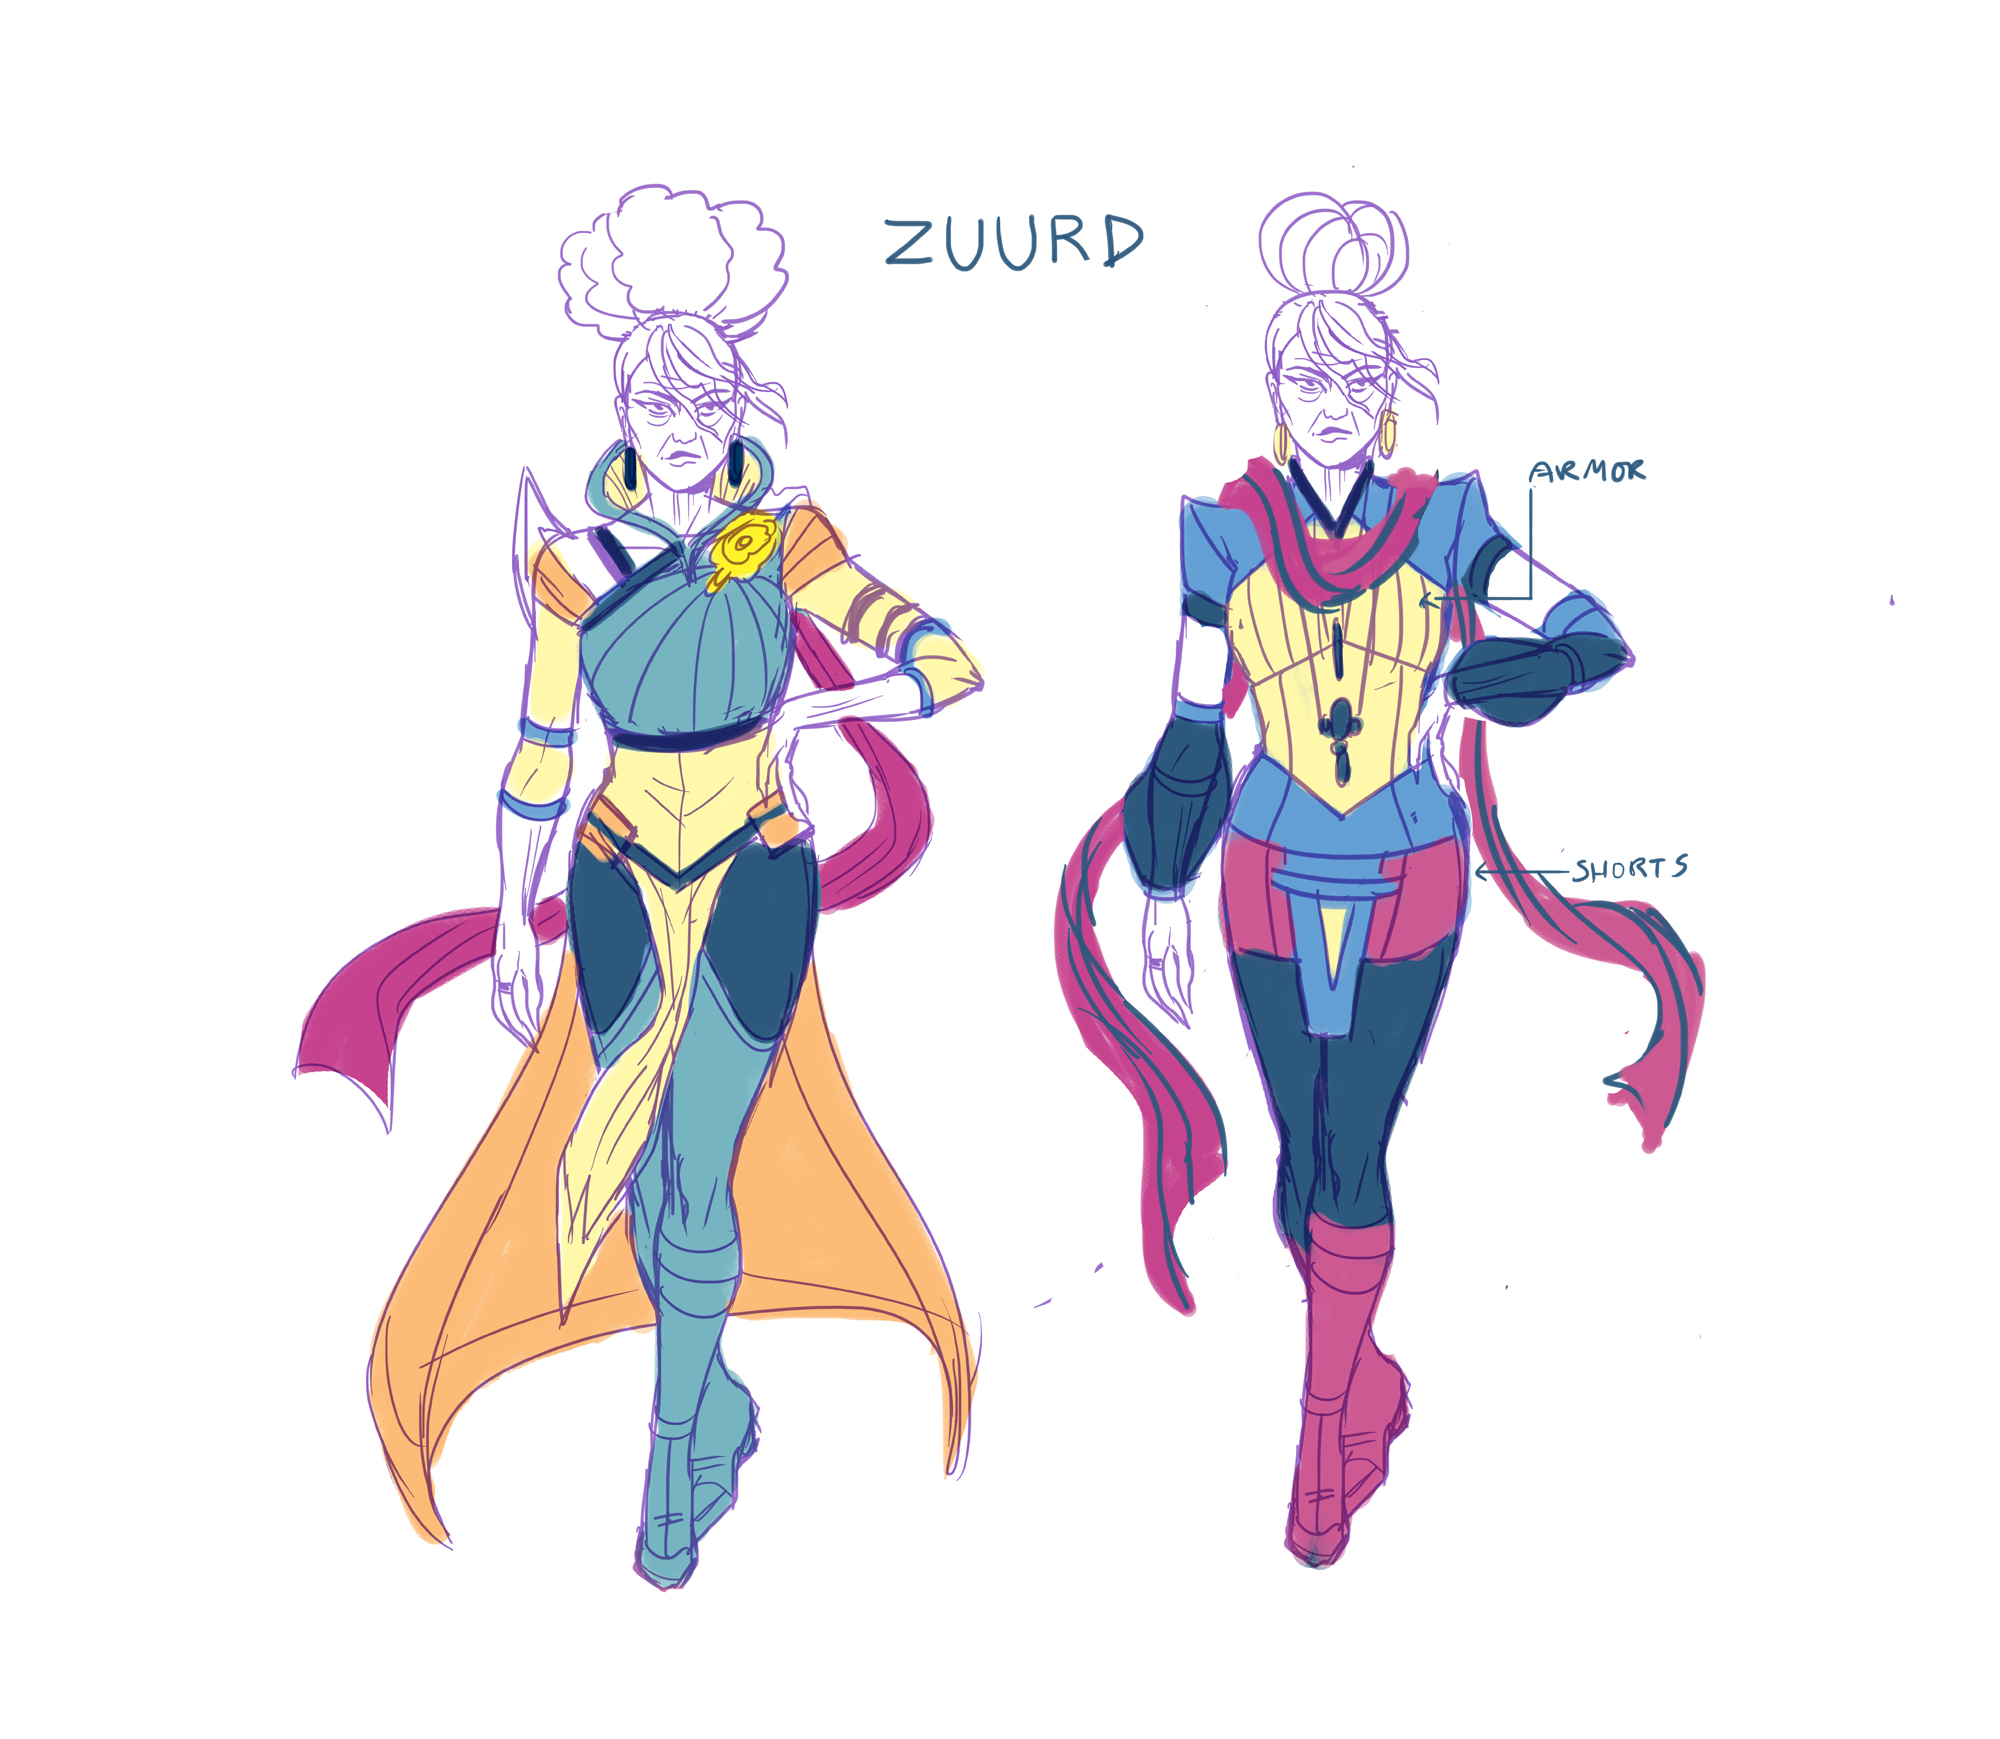 Final Zuurd (right) and costume variant.